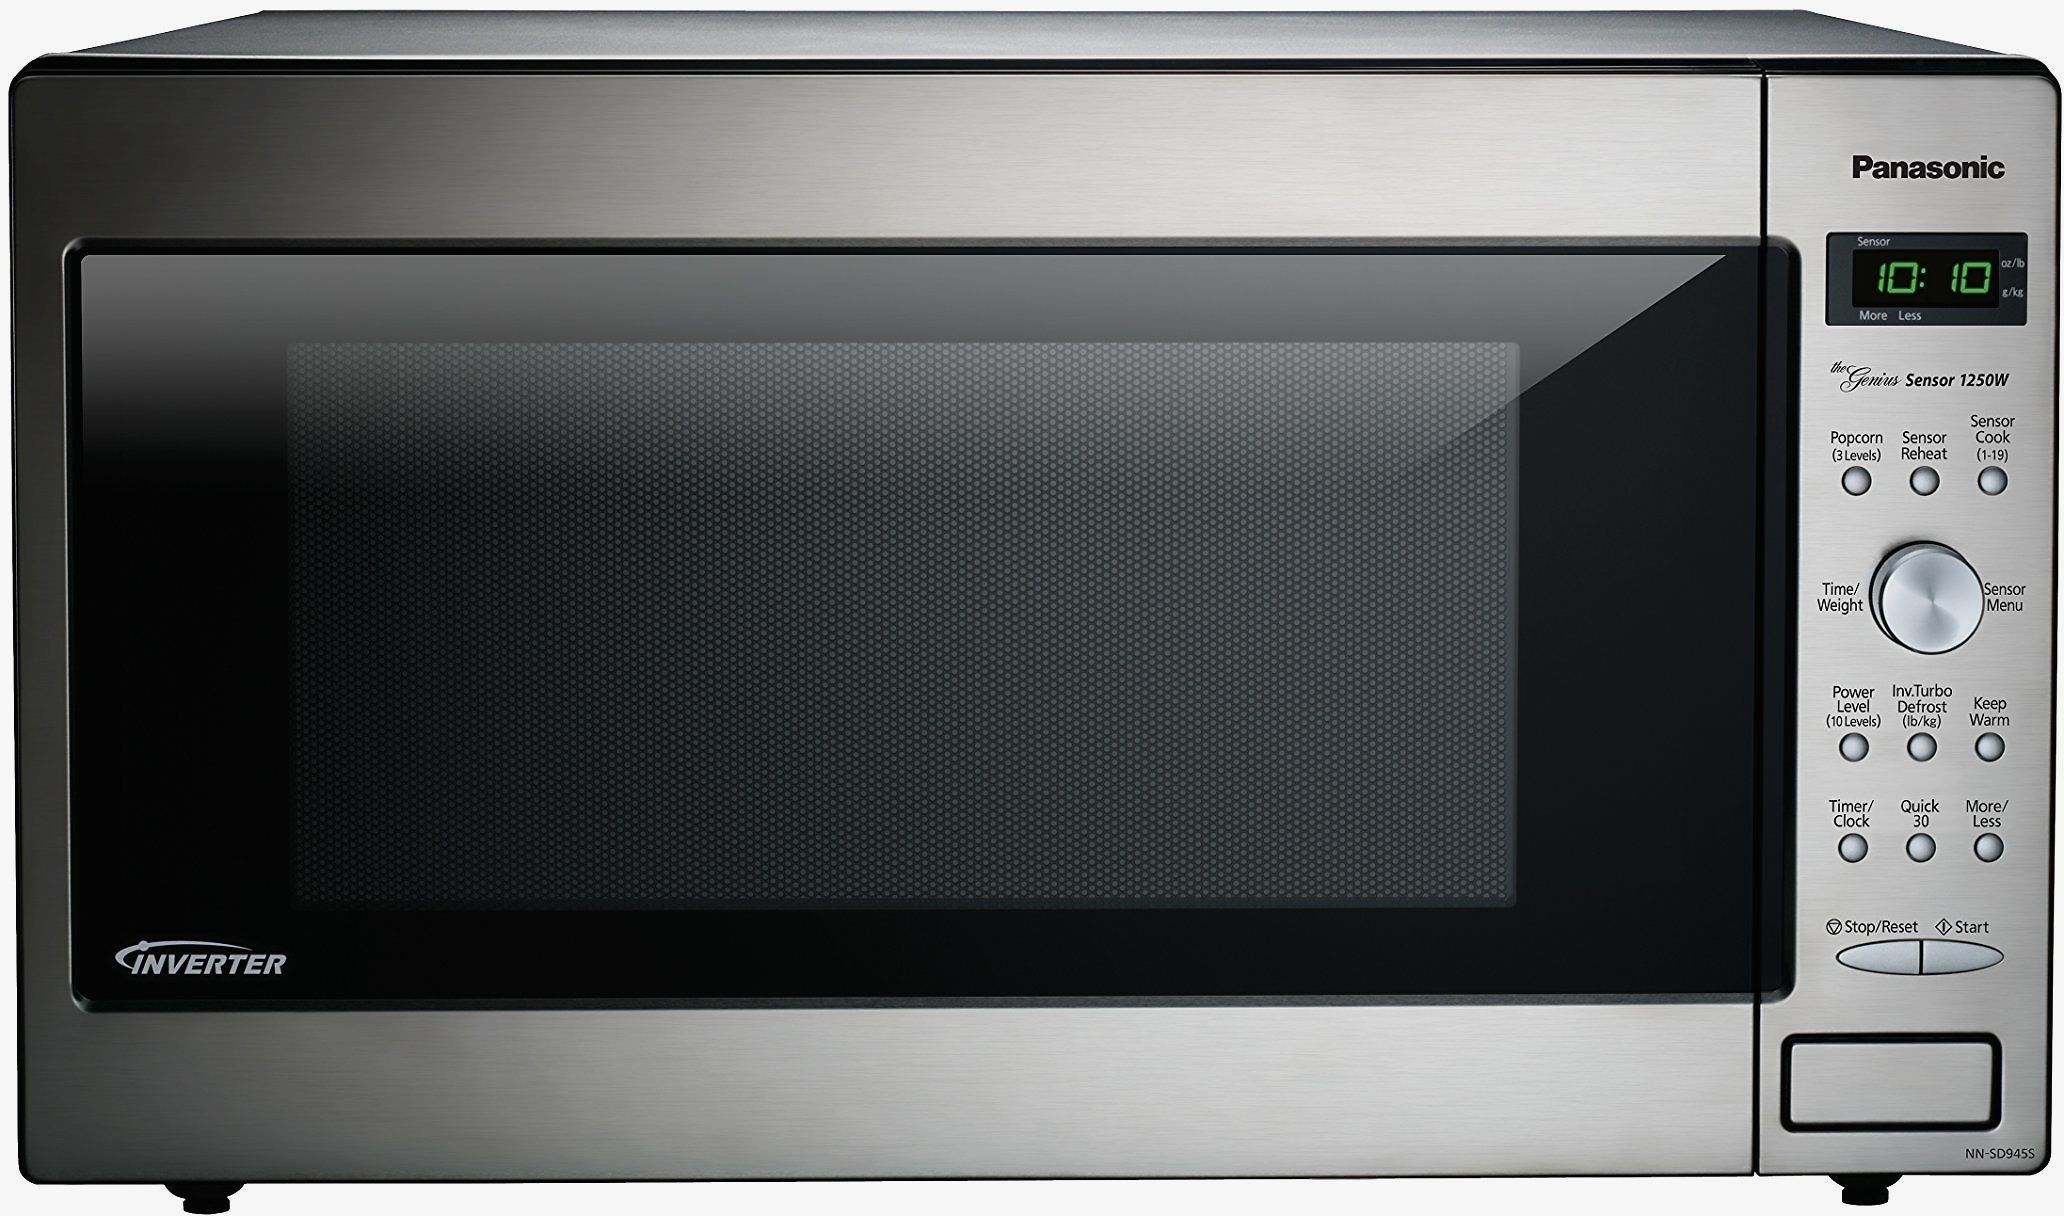 Panasonic Nn Sd945s Countertop Microwave With Inverter Technology